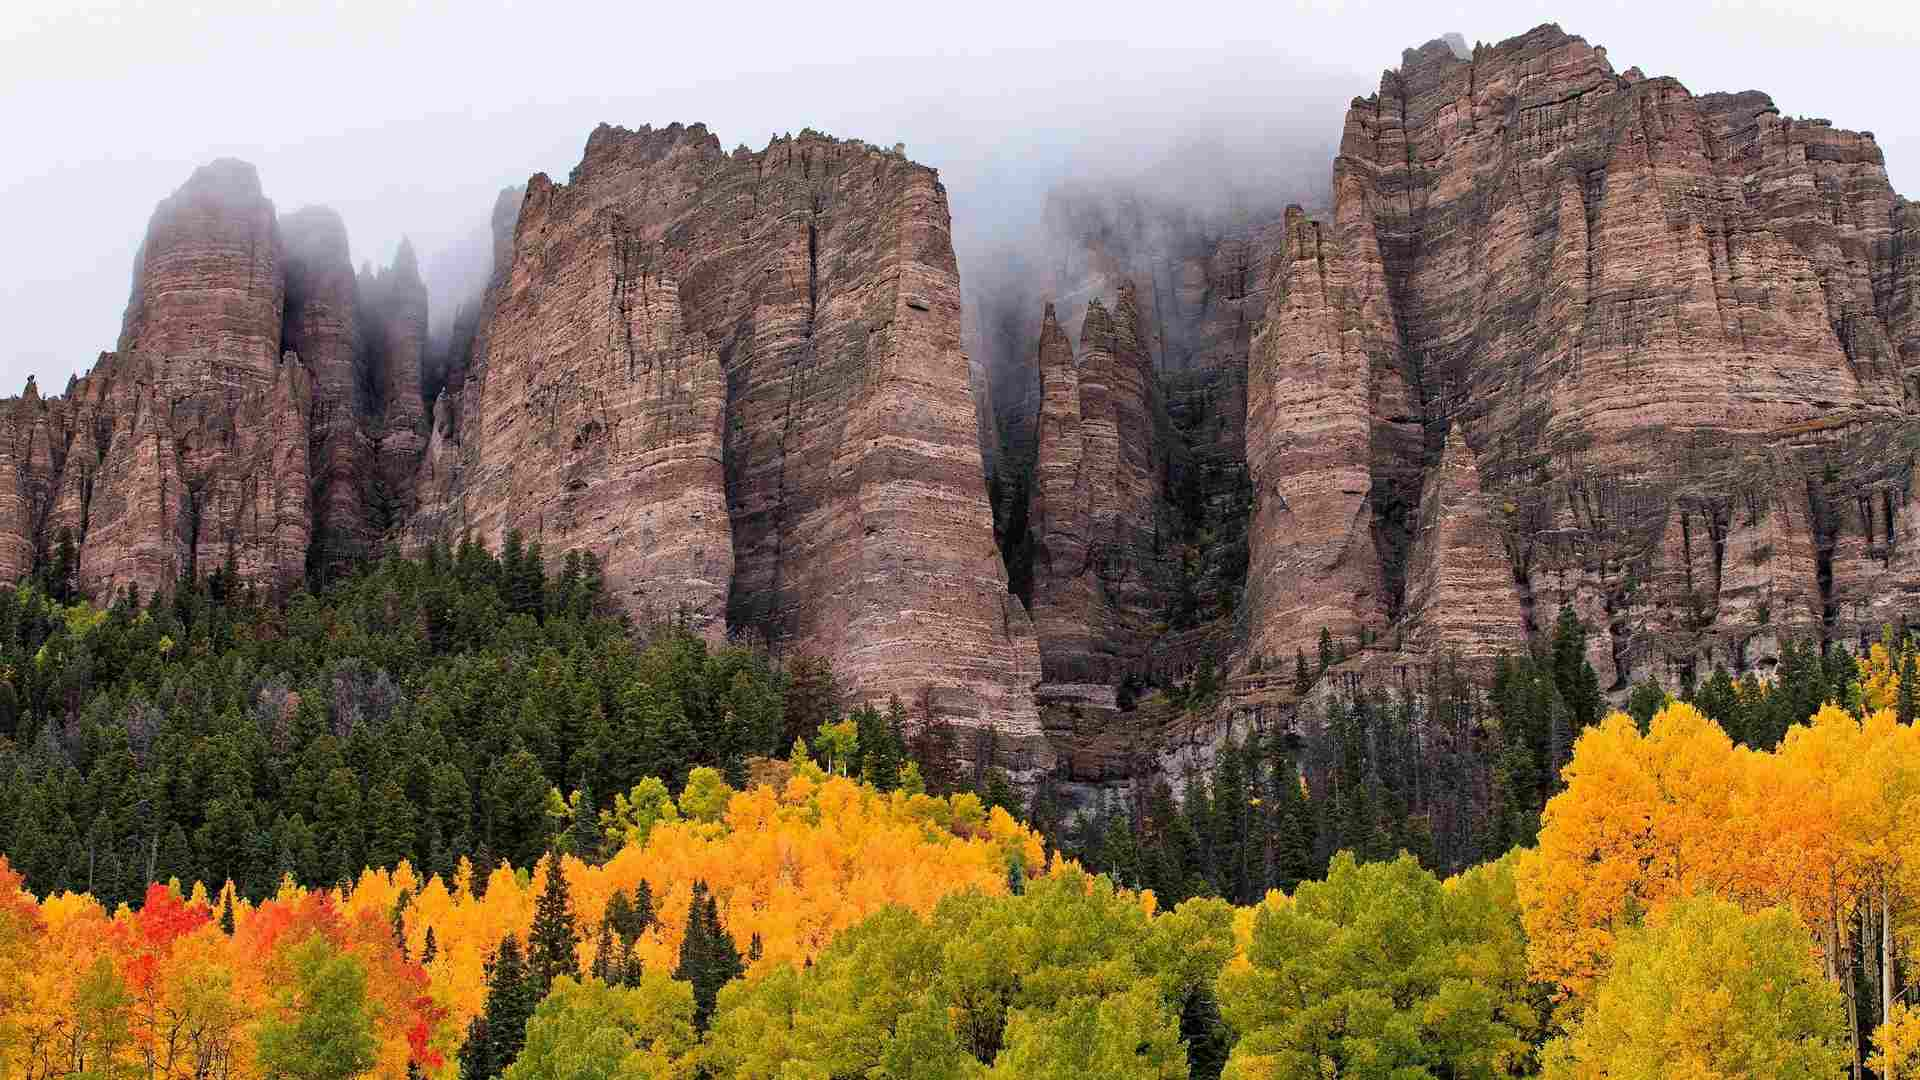 Free autumn wallpaper featuring mountains on a foggy fall morning.